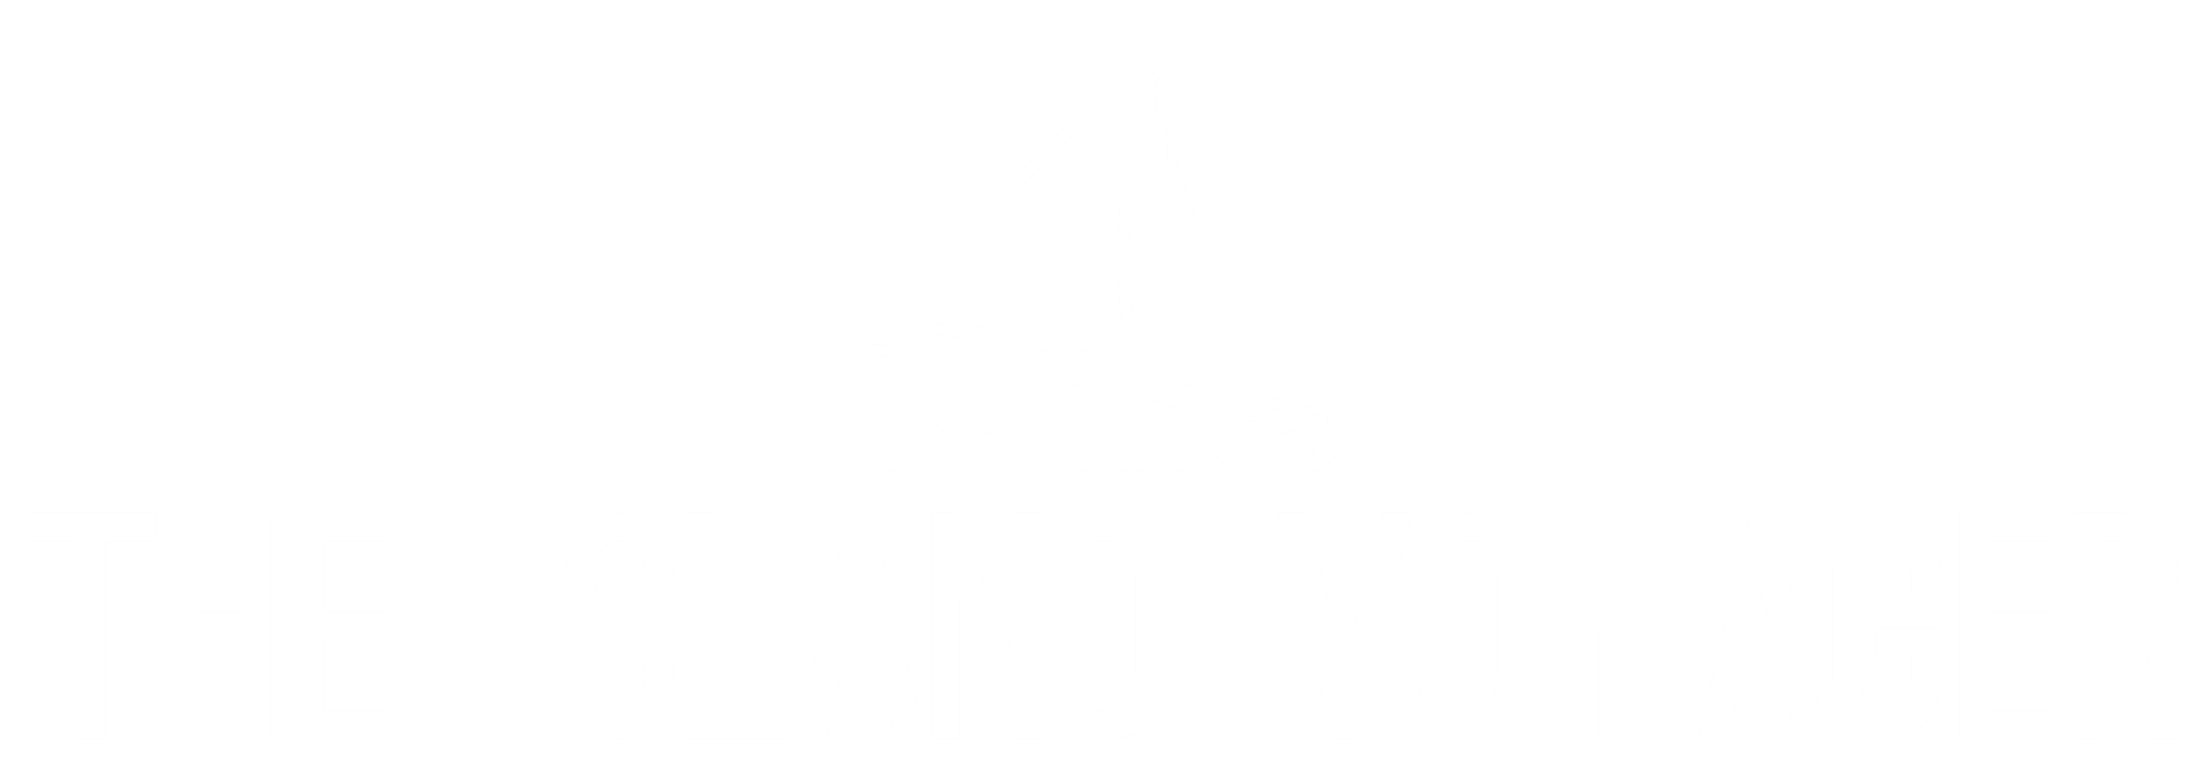 The Island Voyager